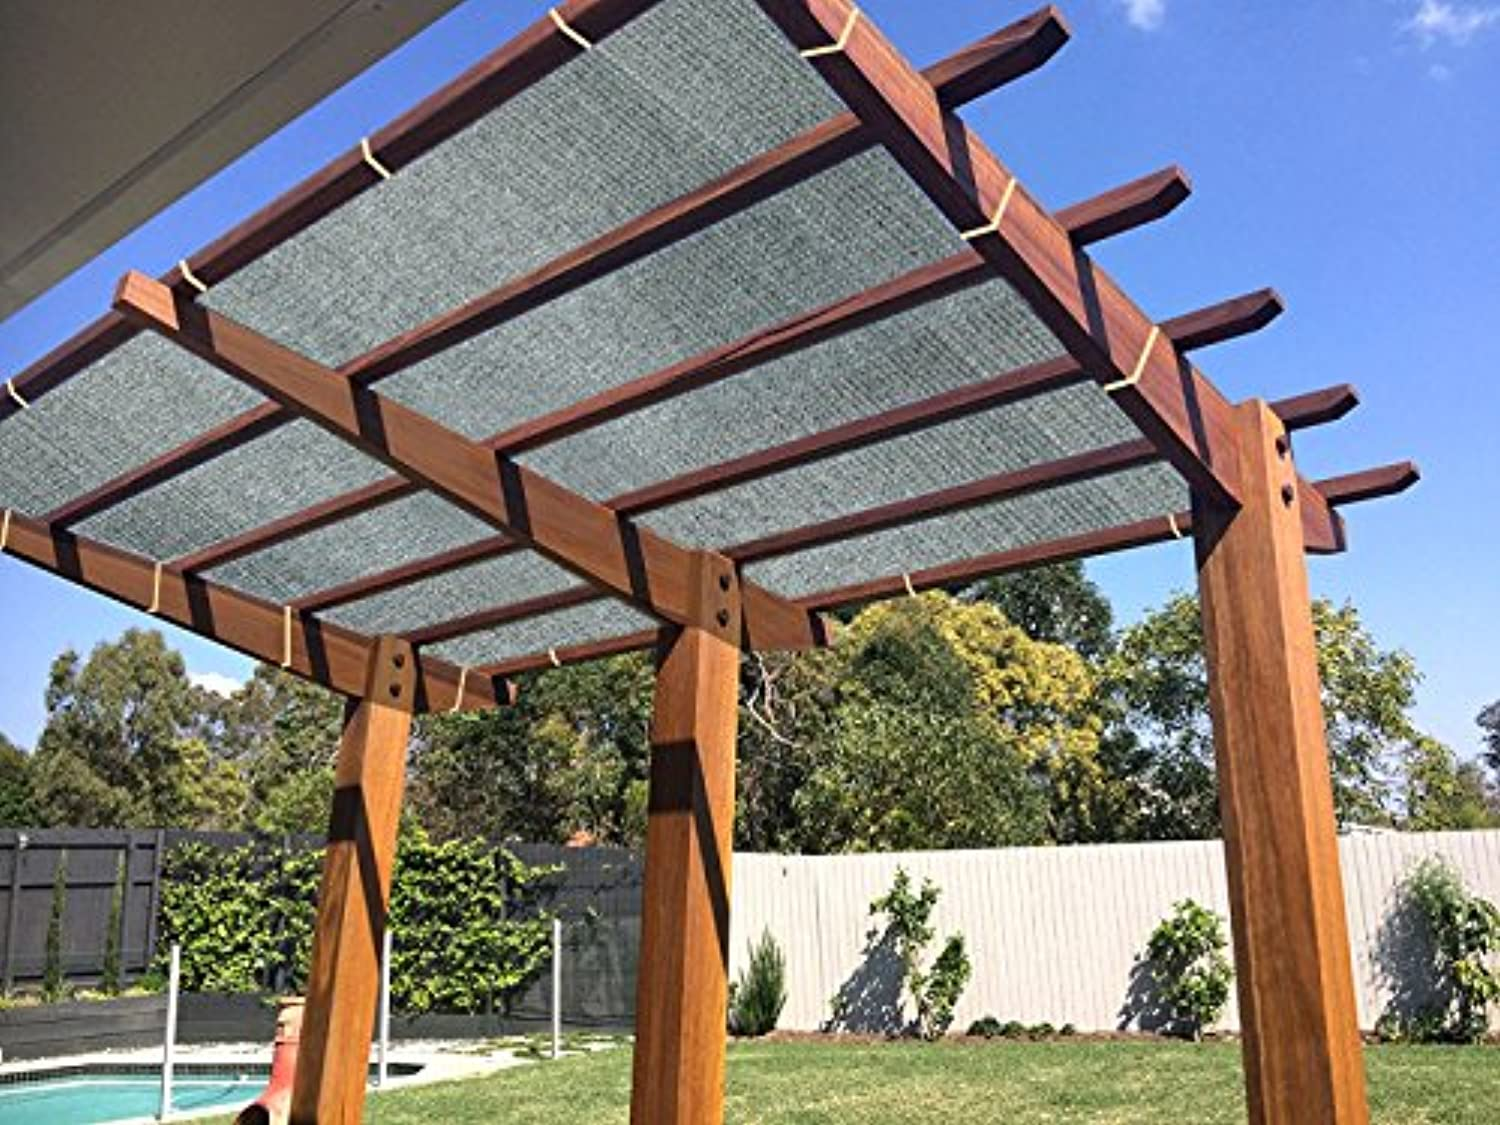 Ecover 90% Shade Cloth Grey Sunblock Fabric Rope UV Resistant Patio Pergola Canopy,6x20ft